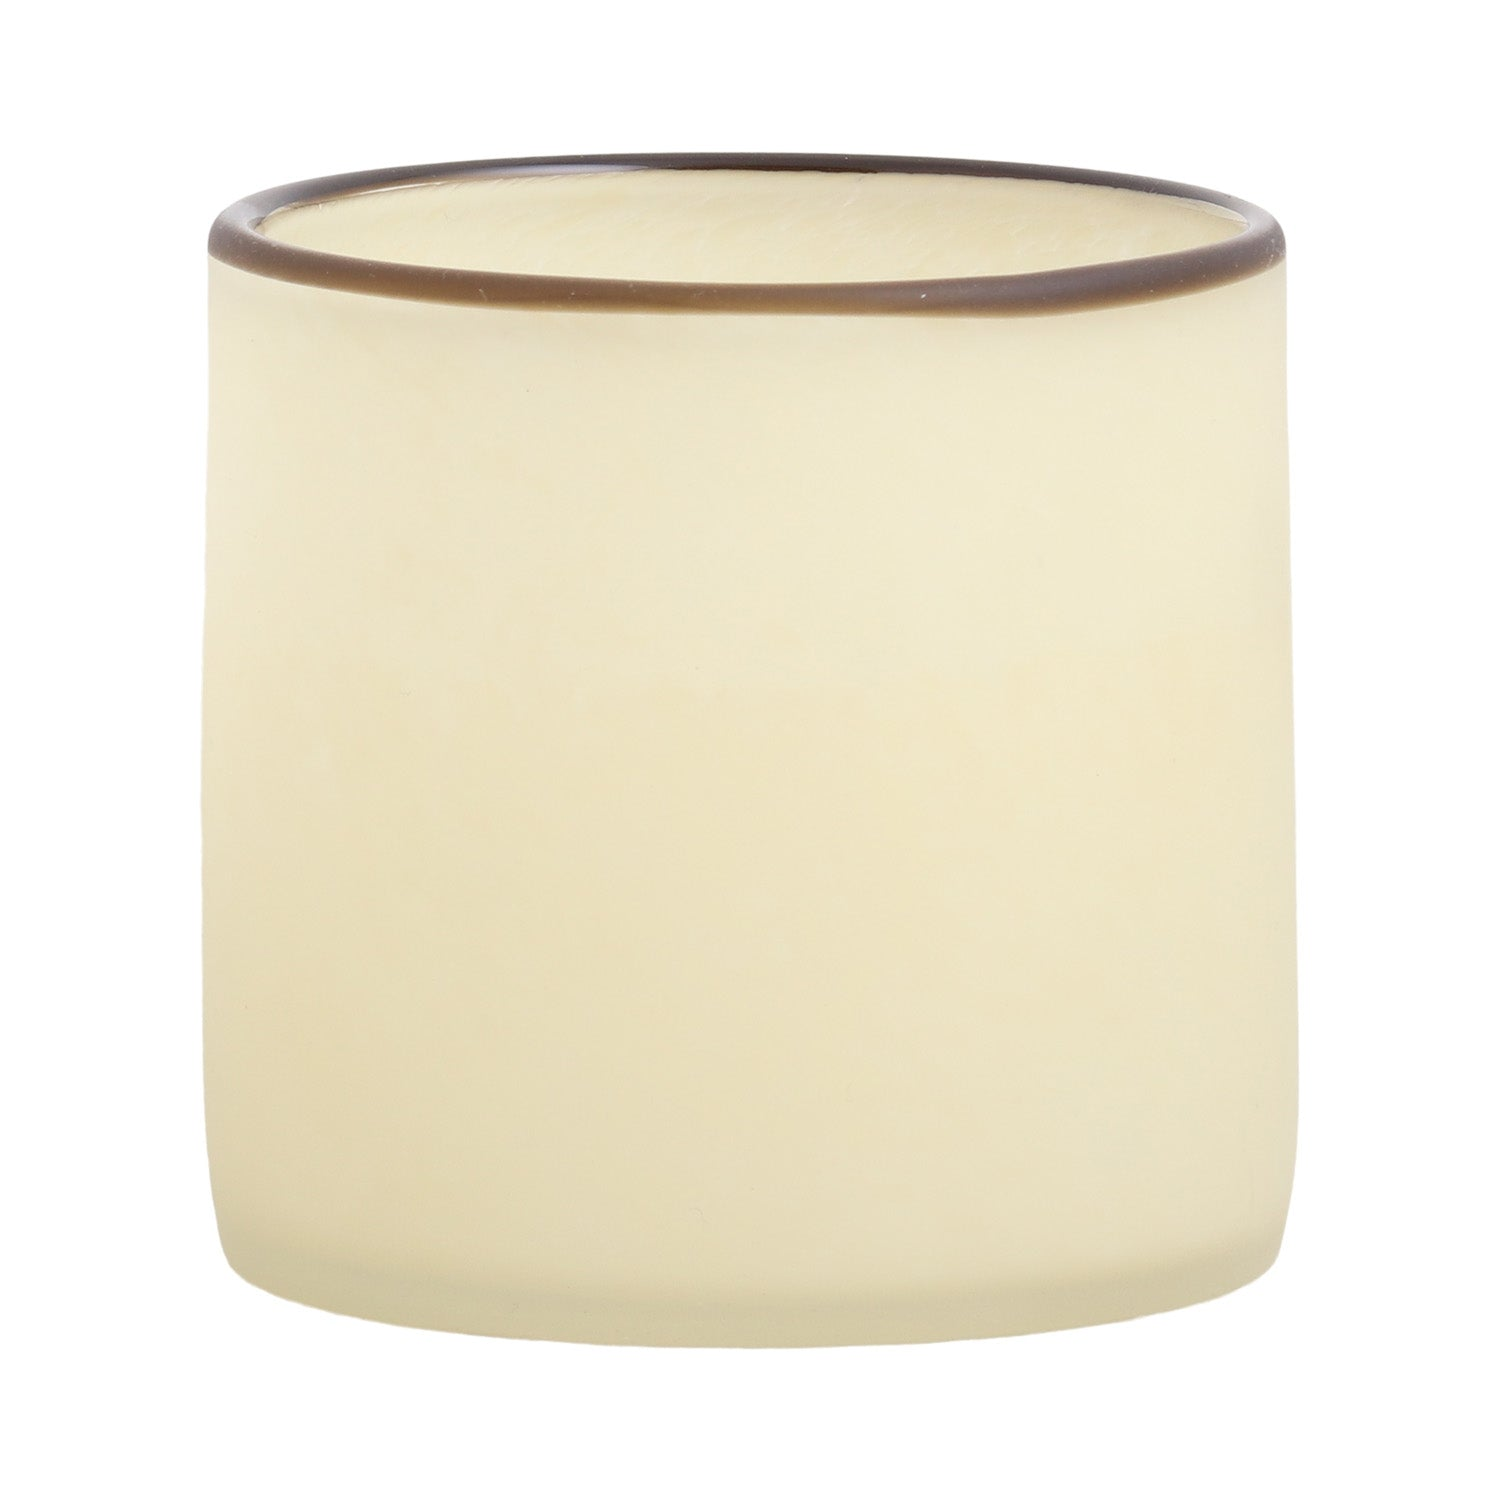 Glass Tealight Holder - Cream